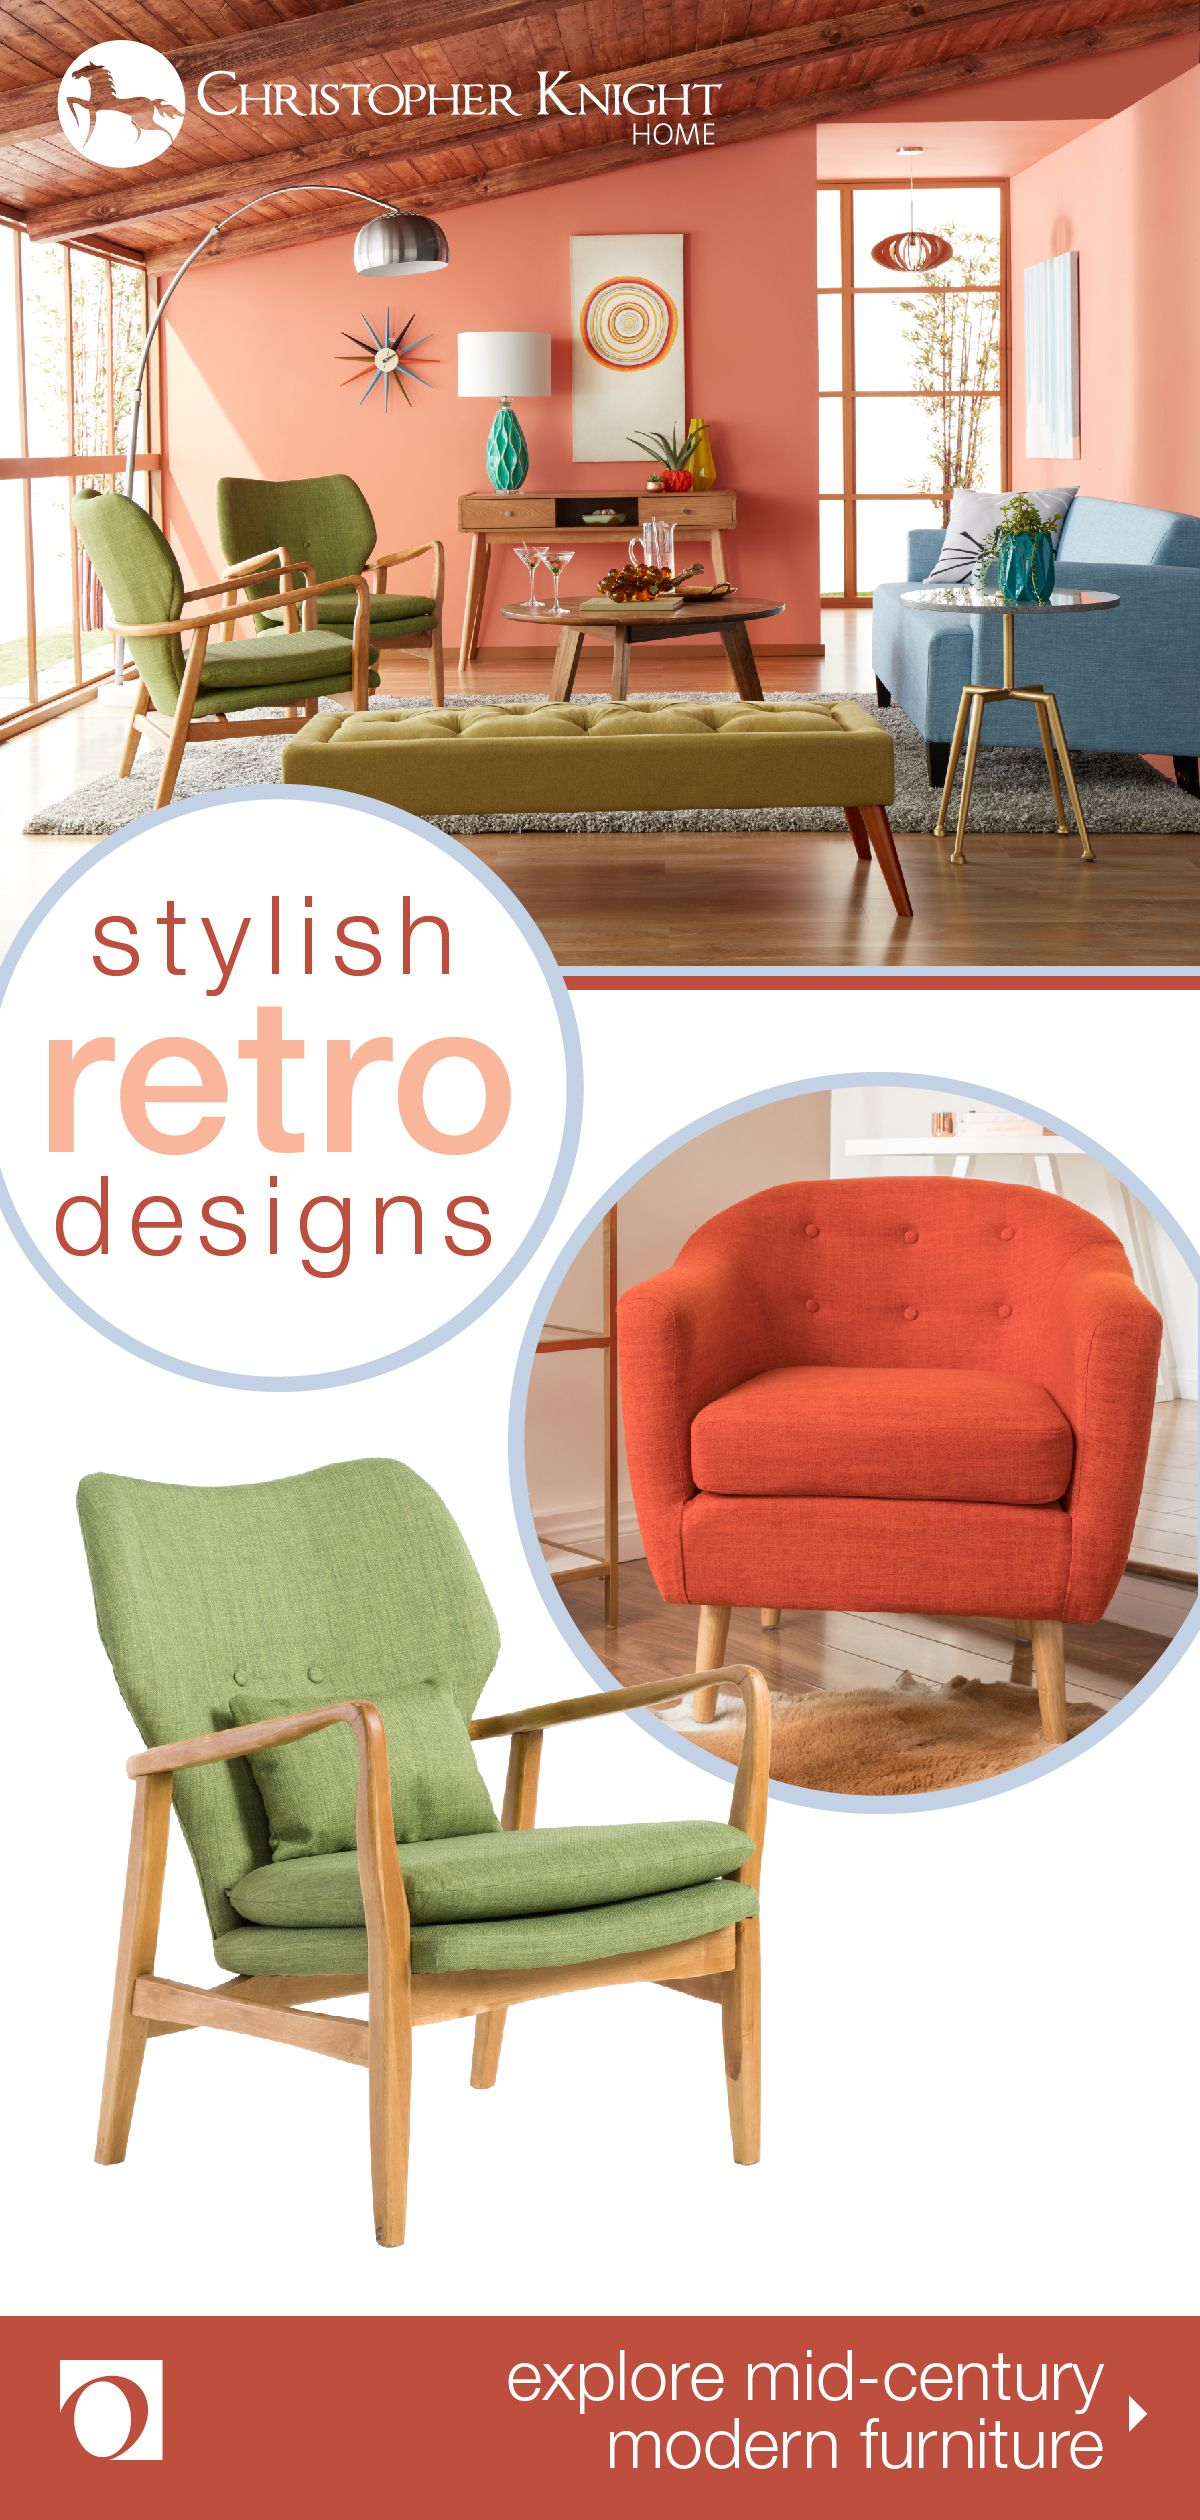 Enjoy the vintage inspired look of mid century modern furniture in your home with